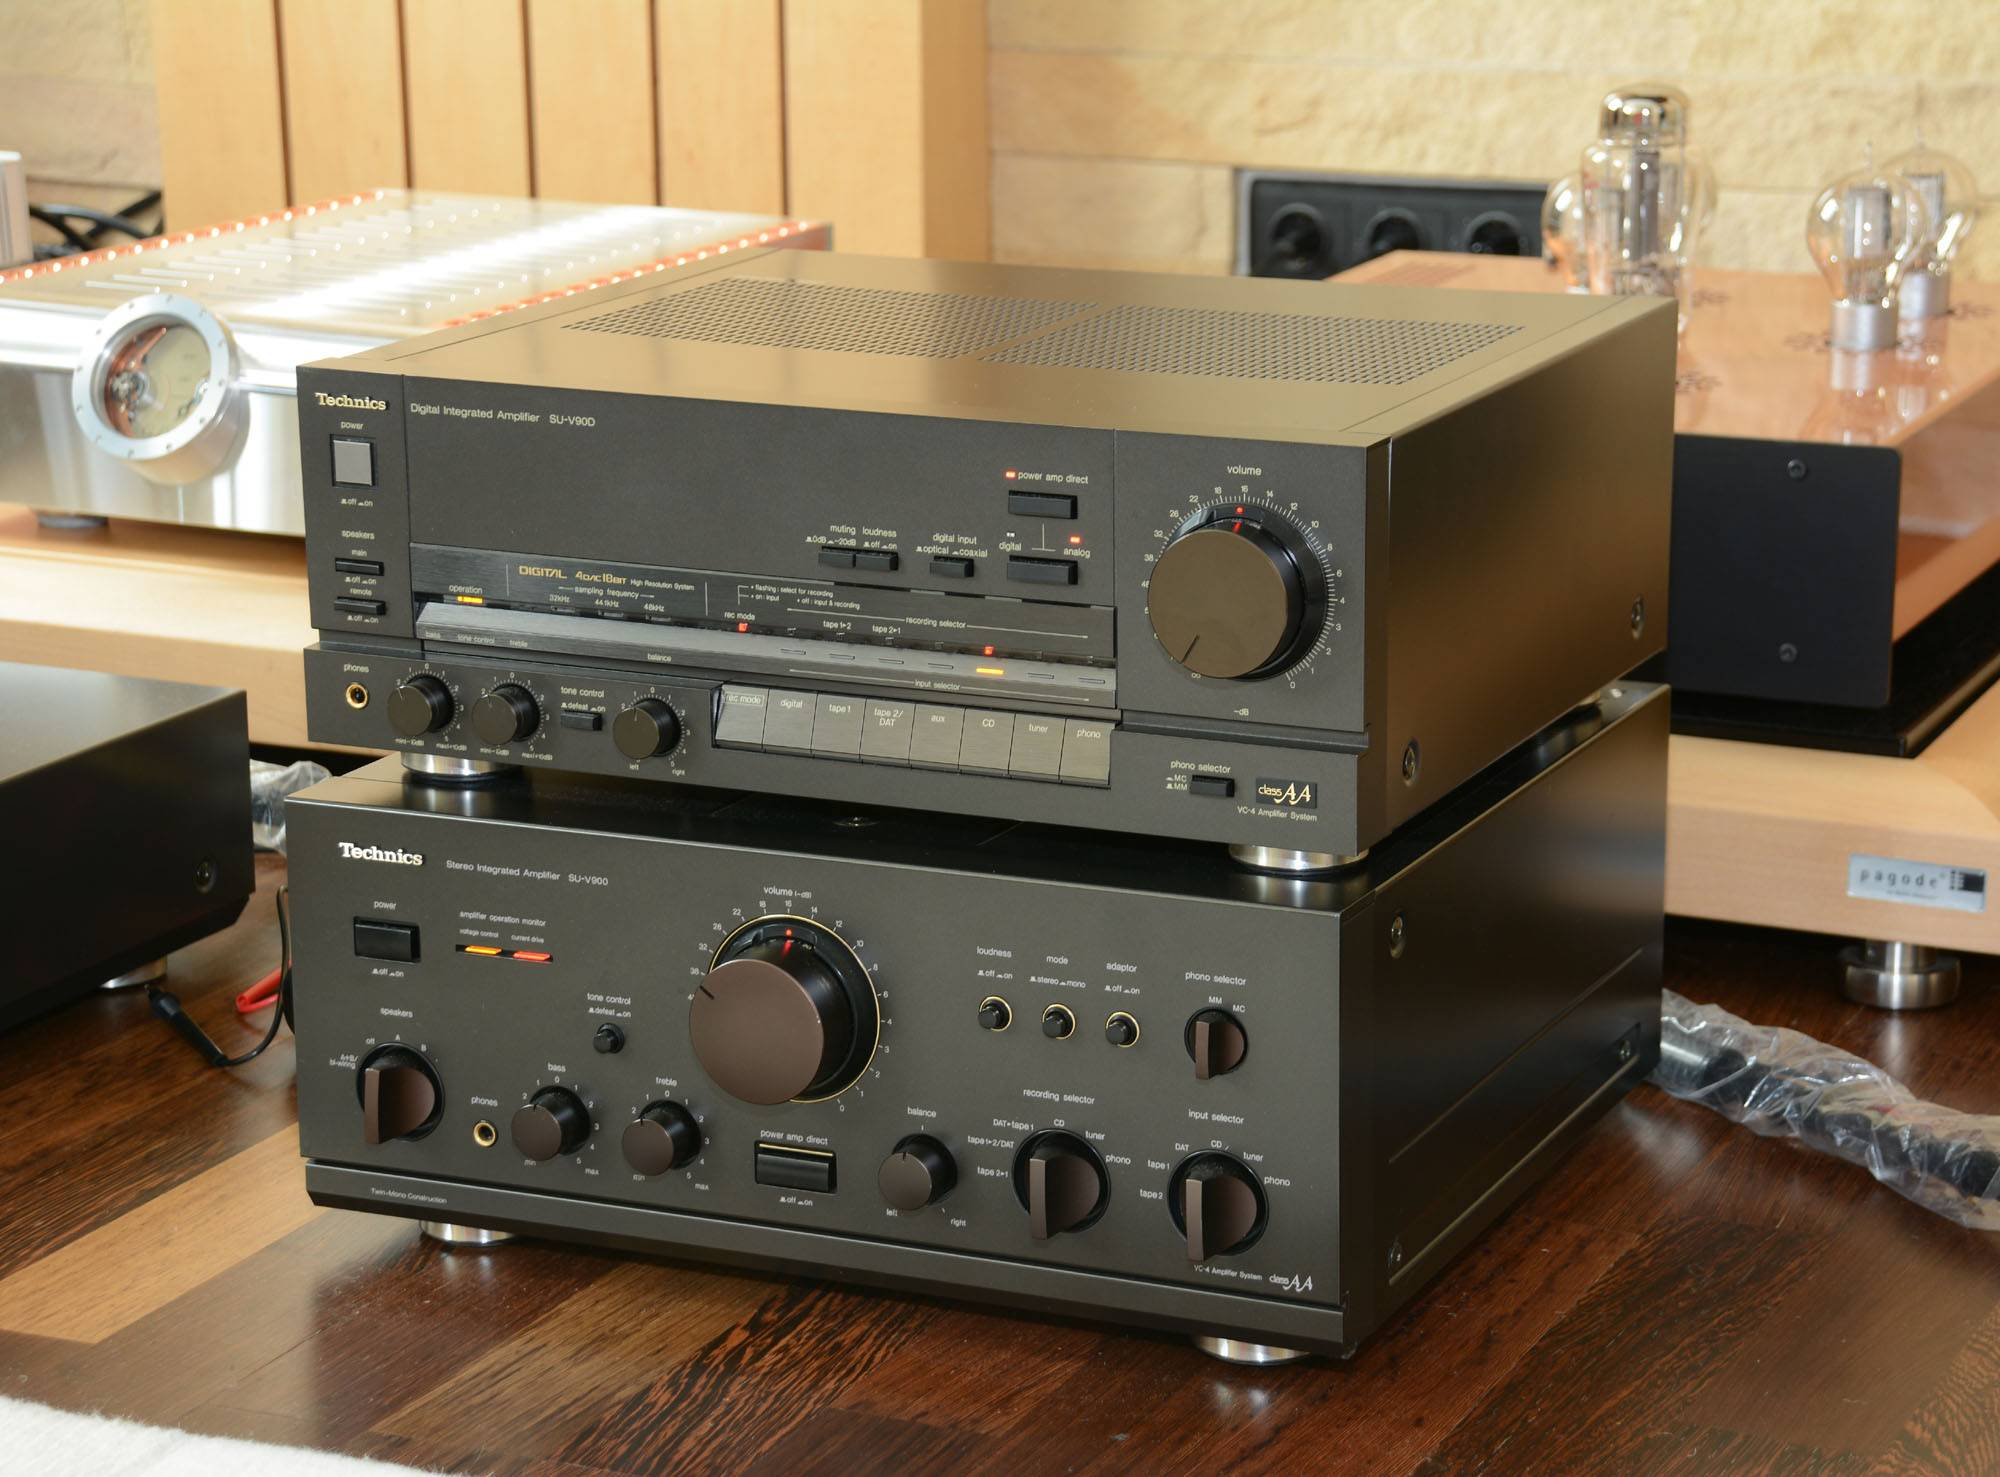 Two vintage Technics amps measured: SU-V900 and SU-V90D